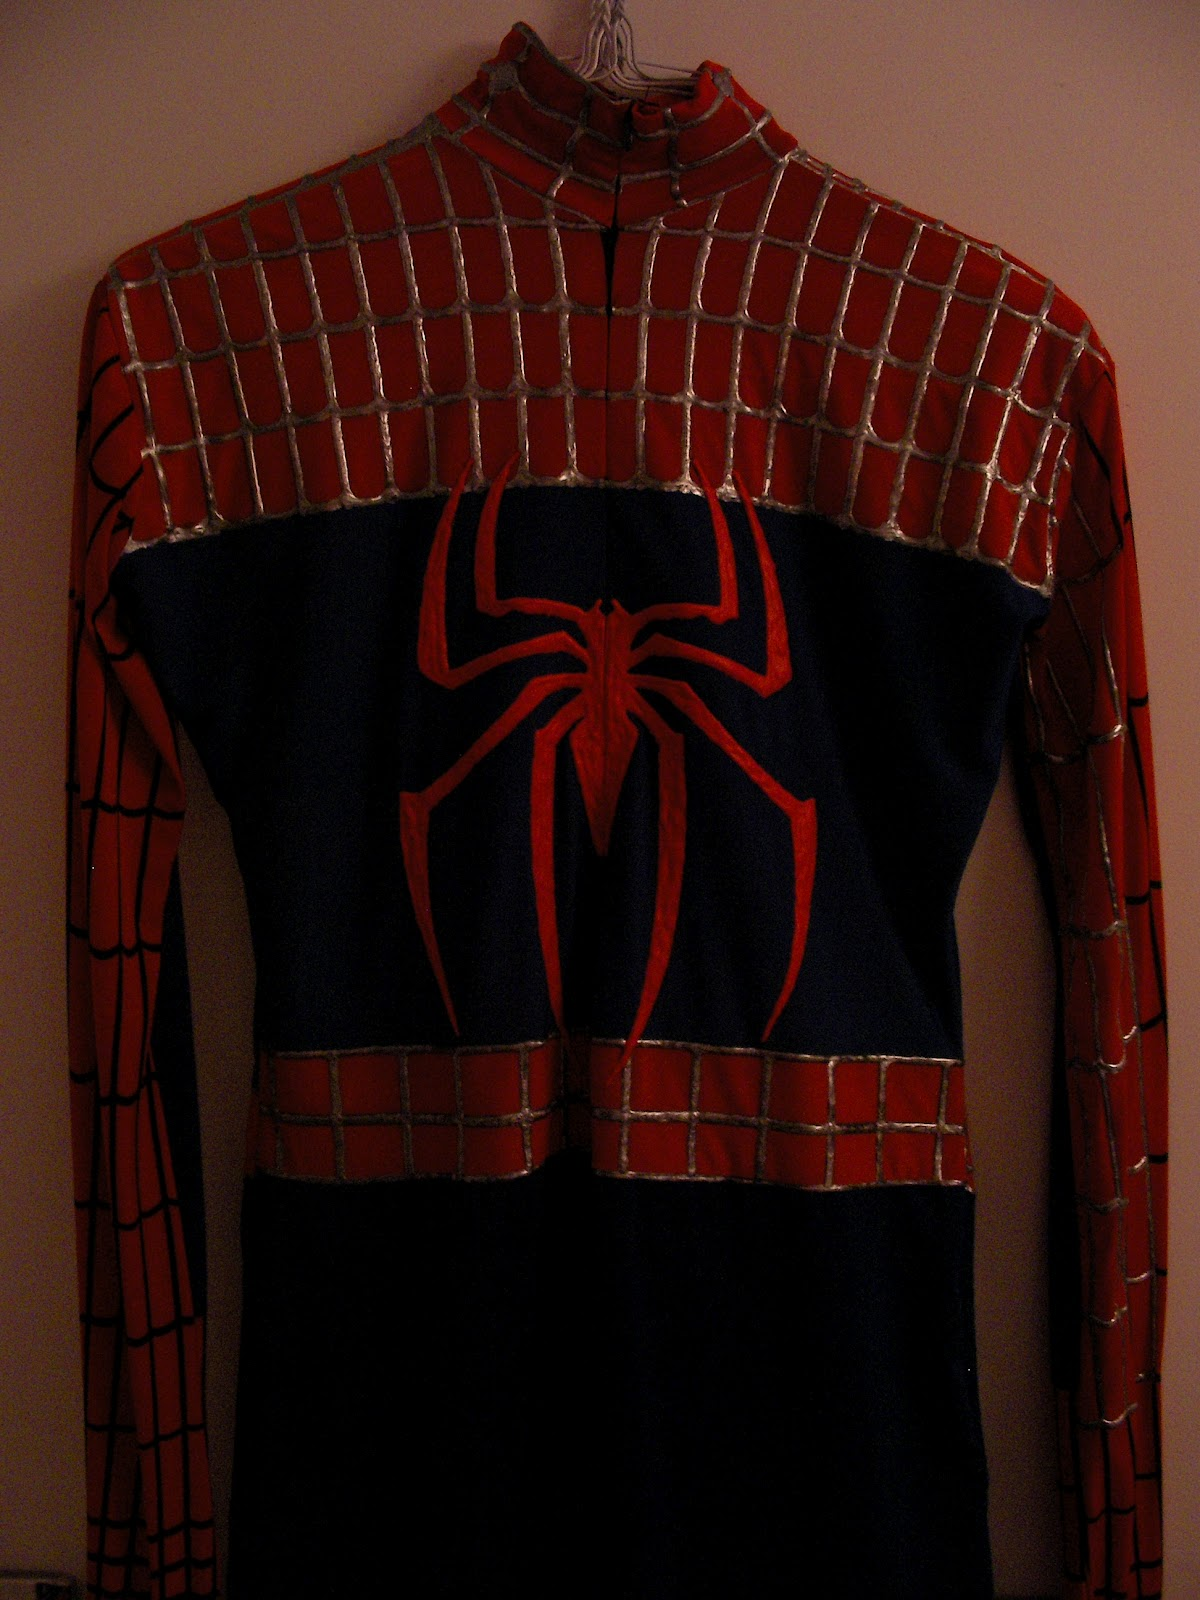 Spiderman replica costume part 2 - The torso - Hacksmith ...